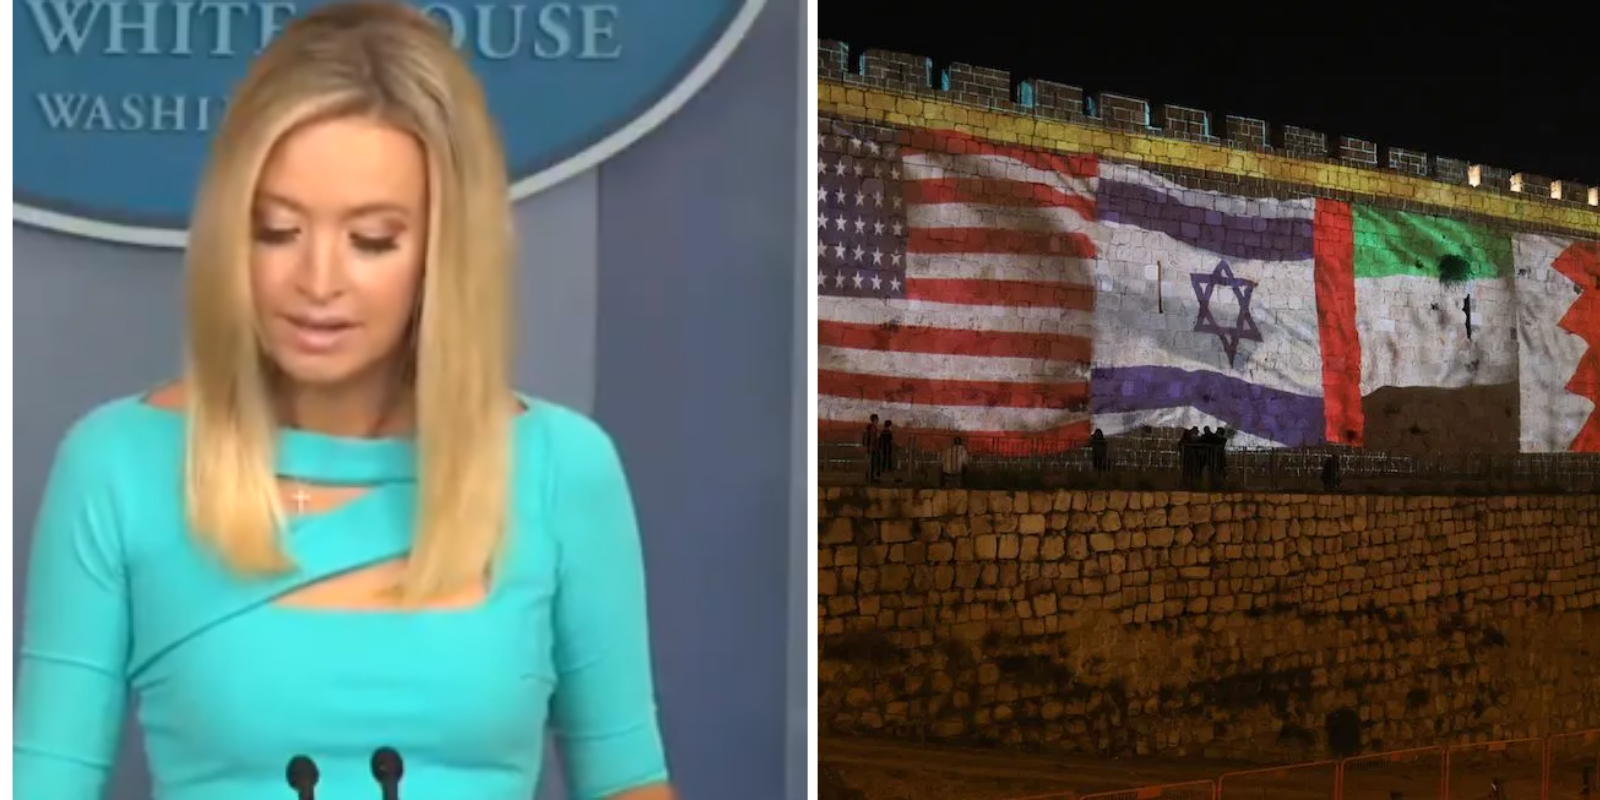 WATCH: White House Press Secretary SLAMS media for failing to cover historic Middle East peace deals